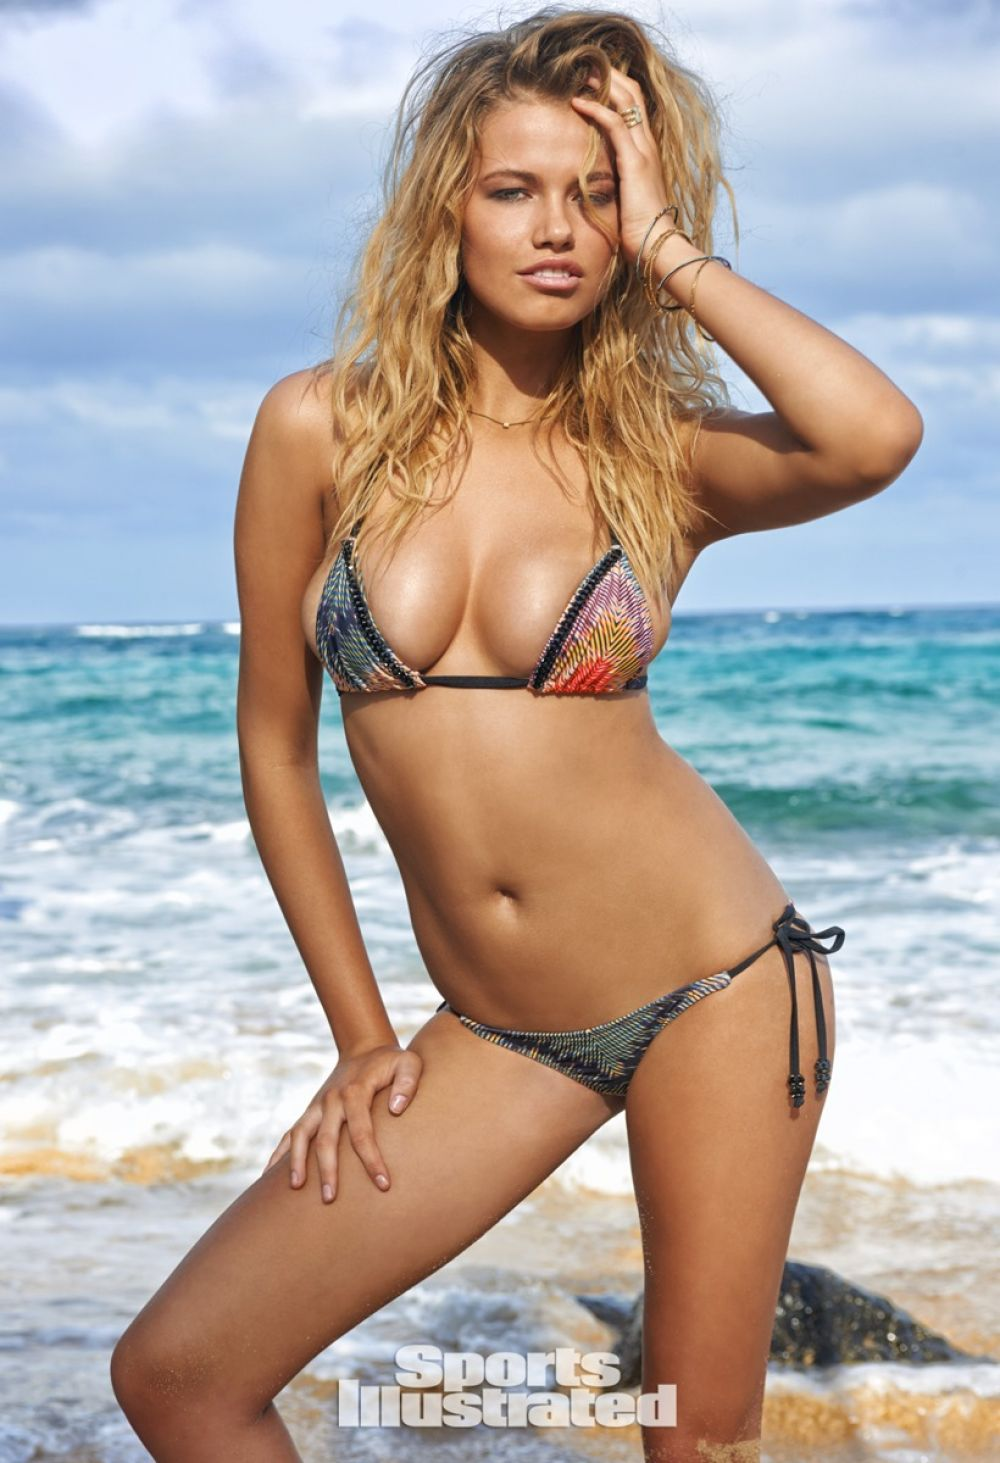 Hailey Clauson Sports Illustrated Swimsuit